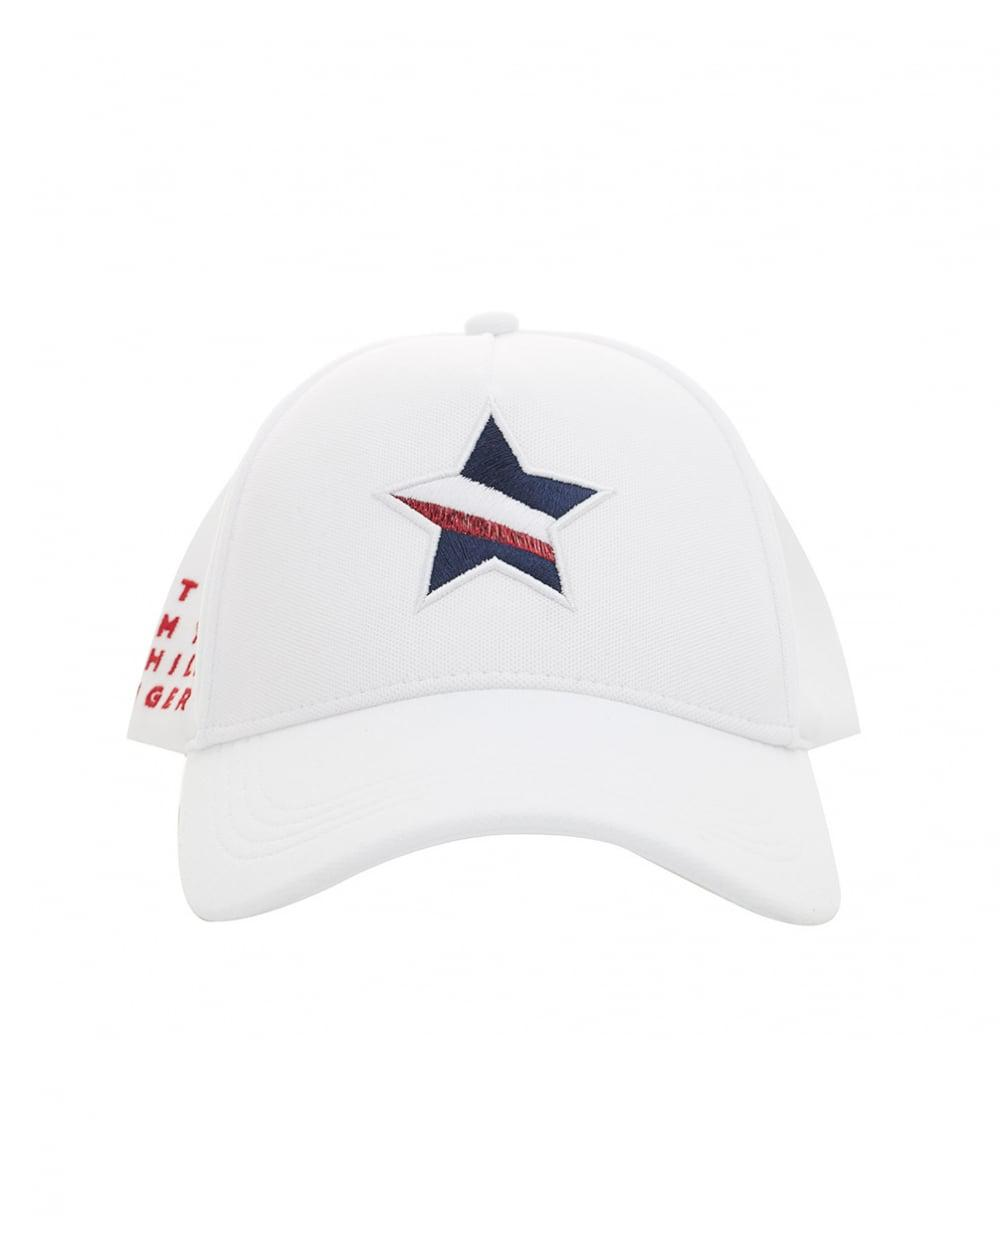 1d2bce4db Tommy Hilfiger Mascot Star Race Cap in White for Men - Lyst